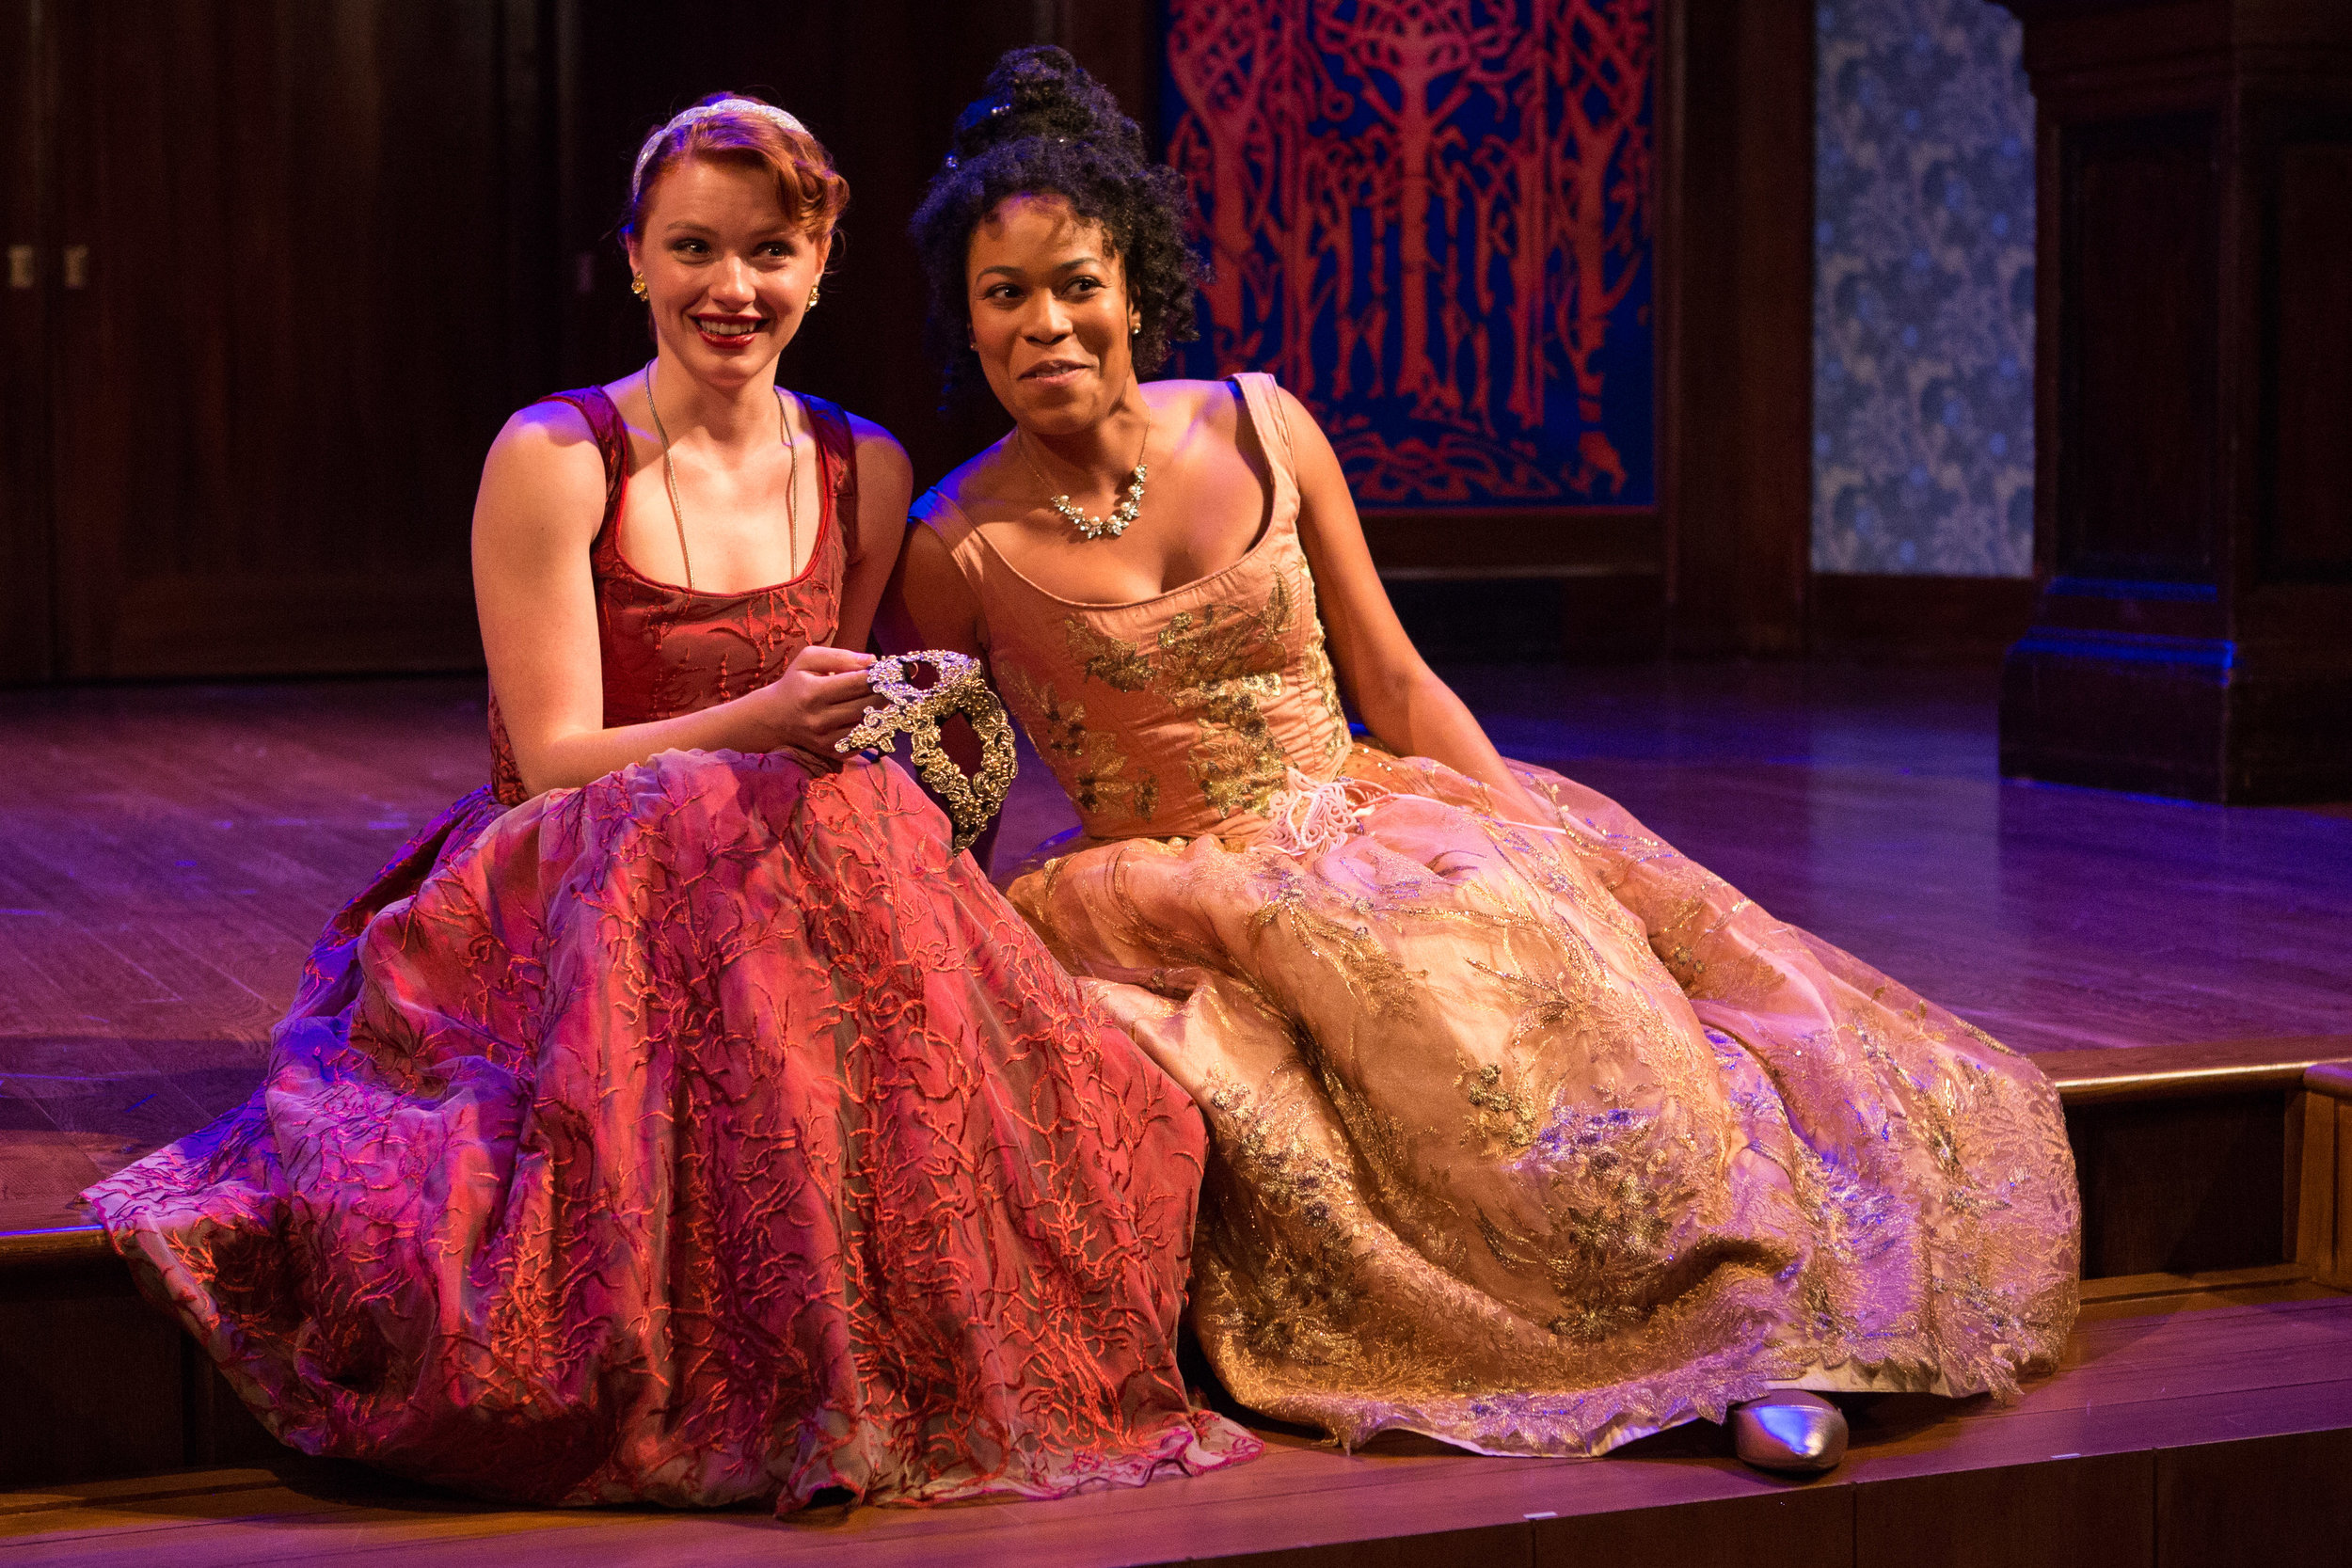 Lindsay Alexandra Carter and Antoinette Robinson as Rosalind and Celia, respectively.